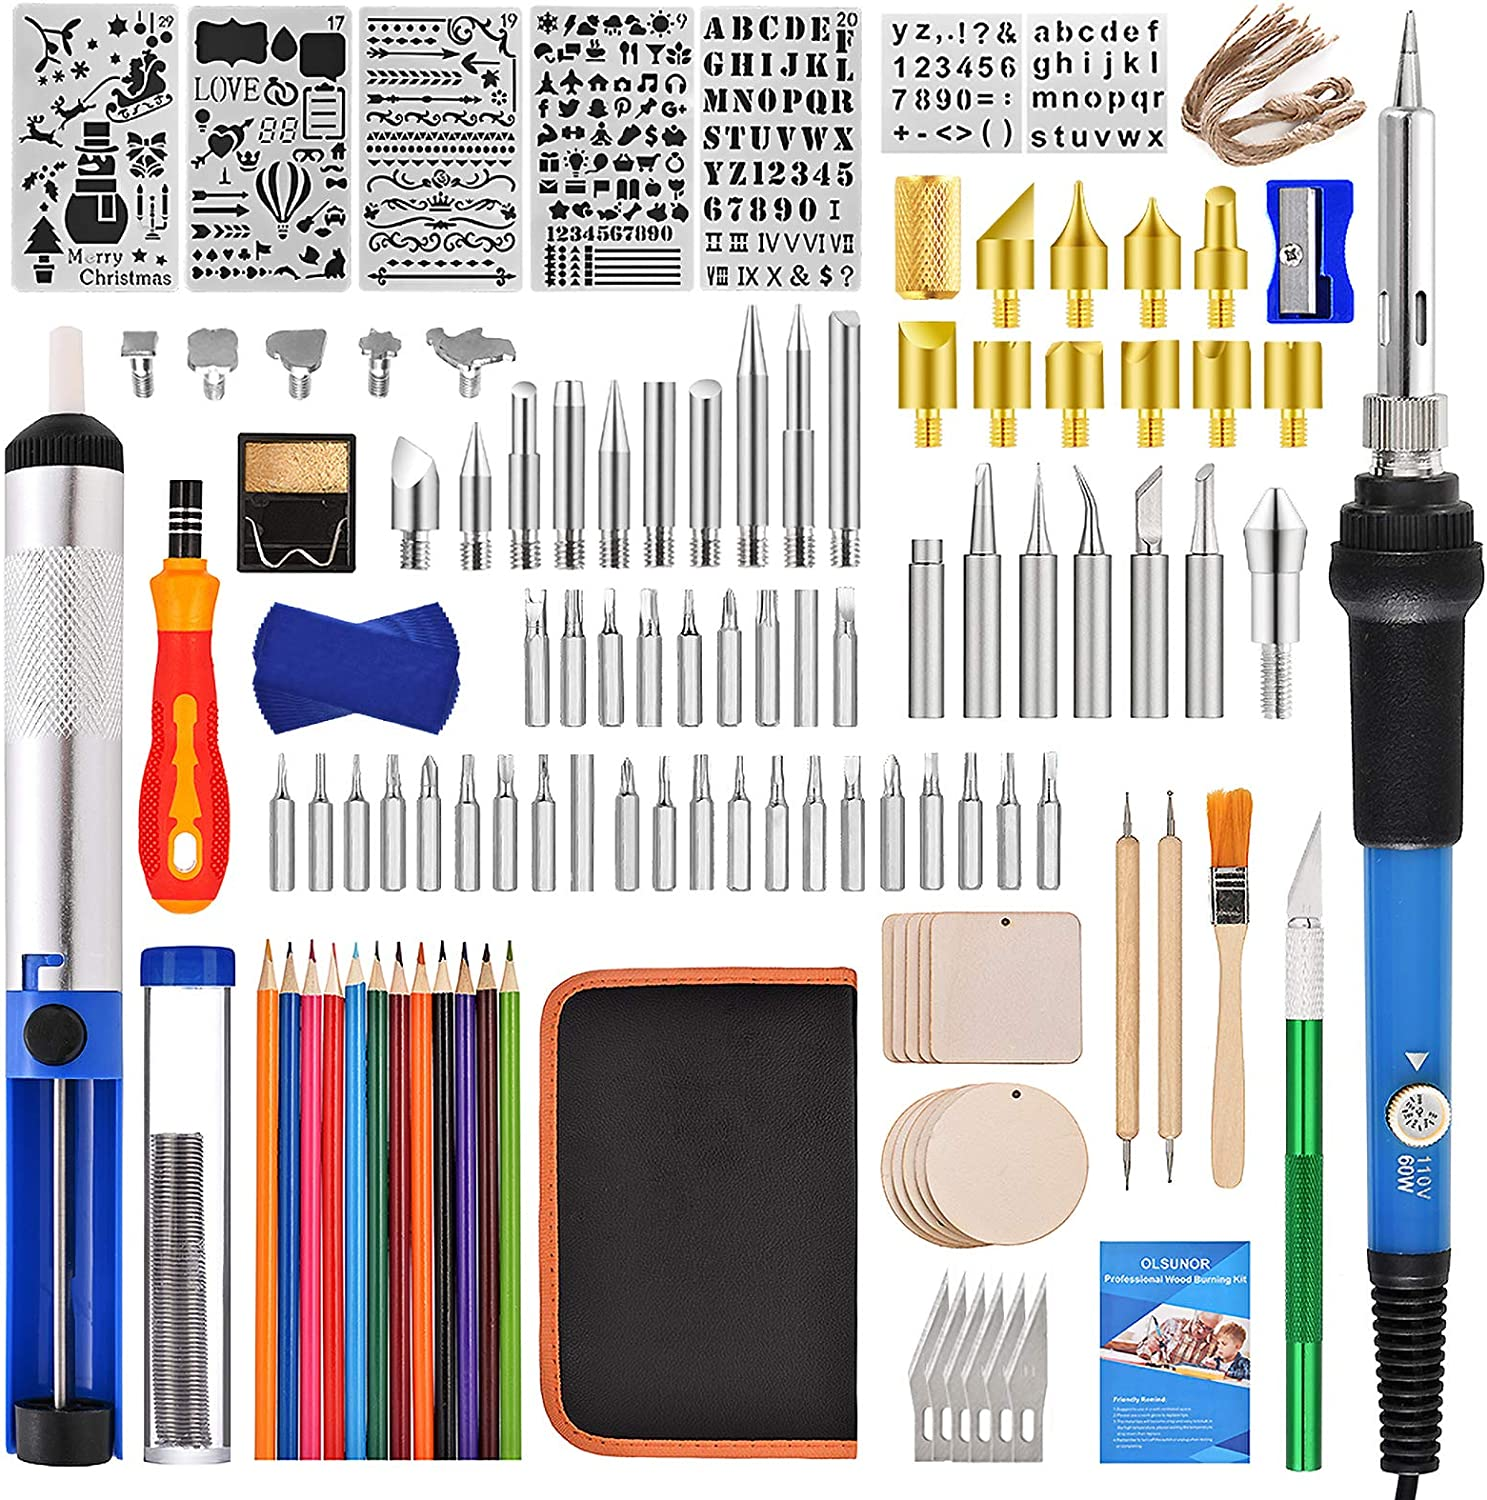 148 PCS Wood Burning Kit Woodburning Tool with LCD Display Adjustable Temperature Soldering Pyrography Pen,Fathers Day Wood Tool,Creative Tool DIY Kit For Embossing//Carving//Soldering Pyrography Tips